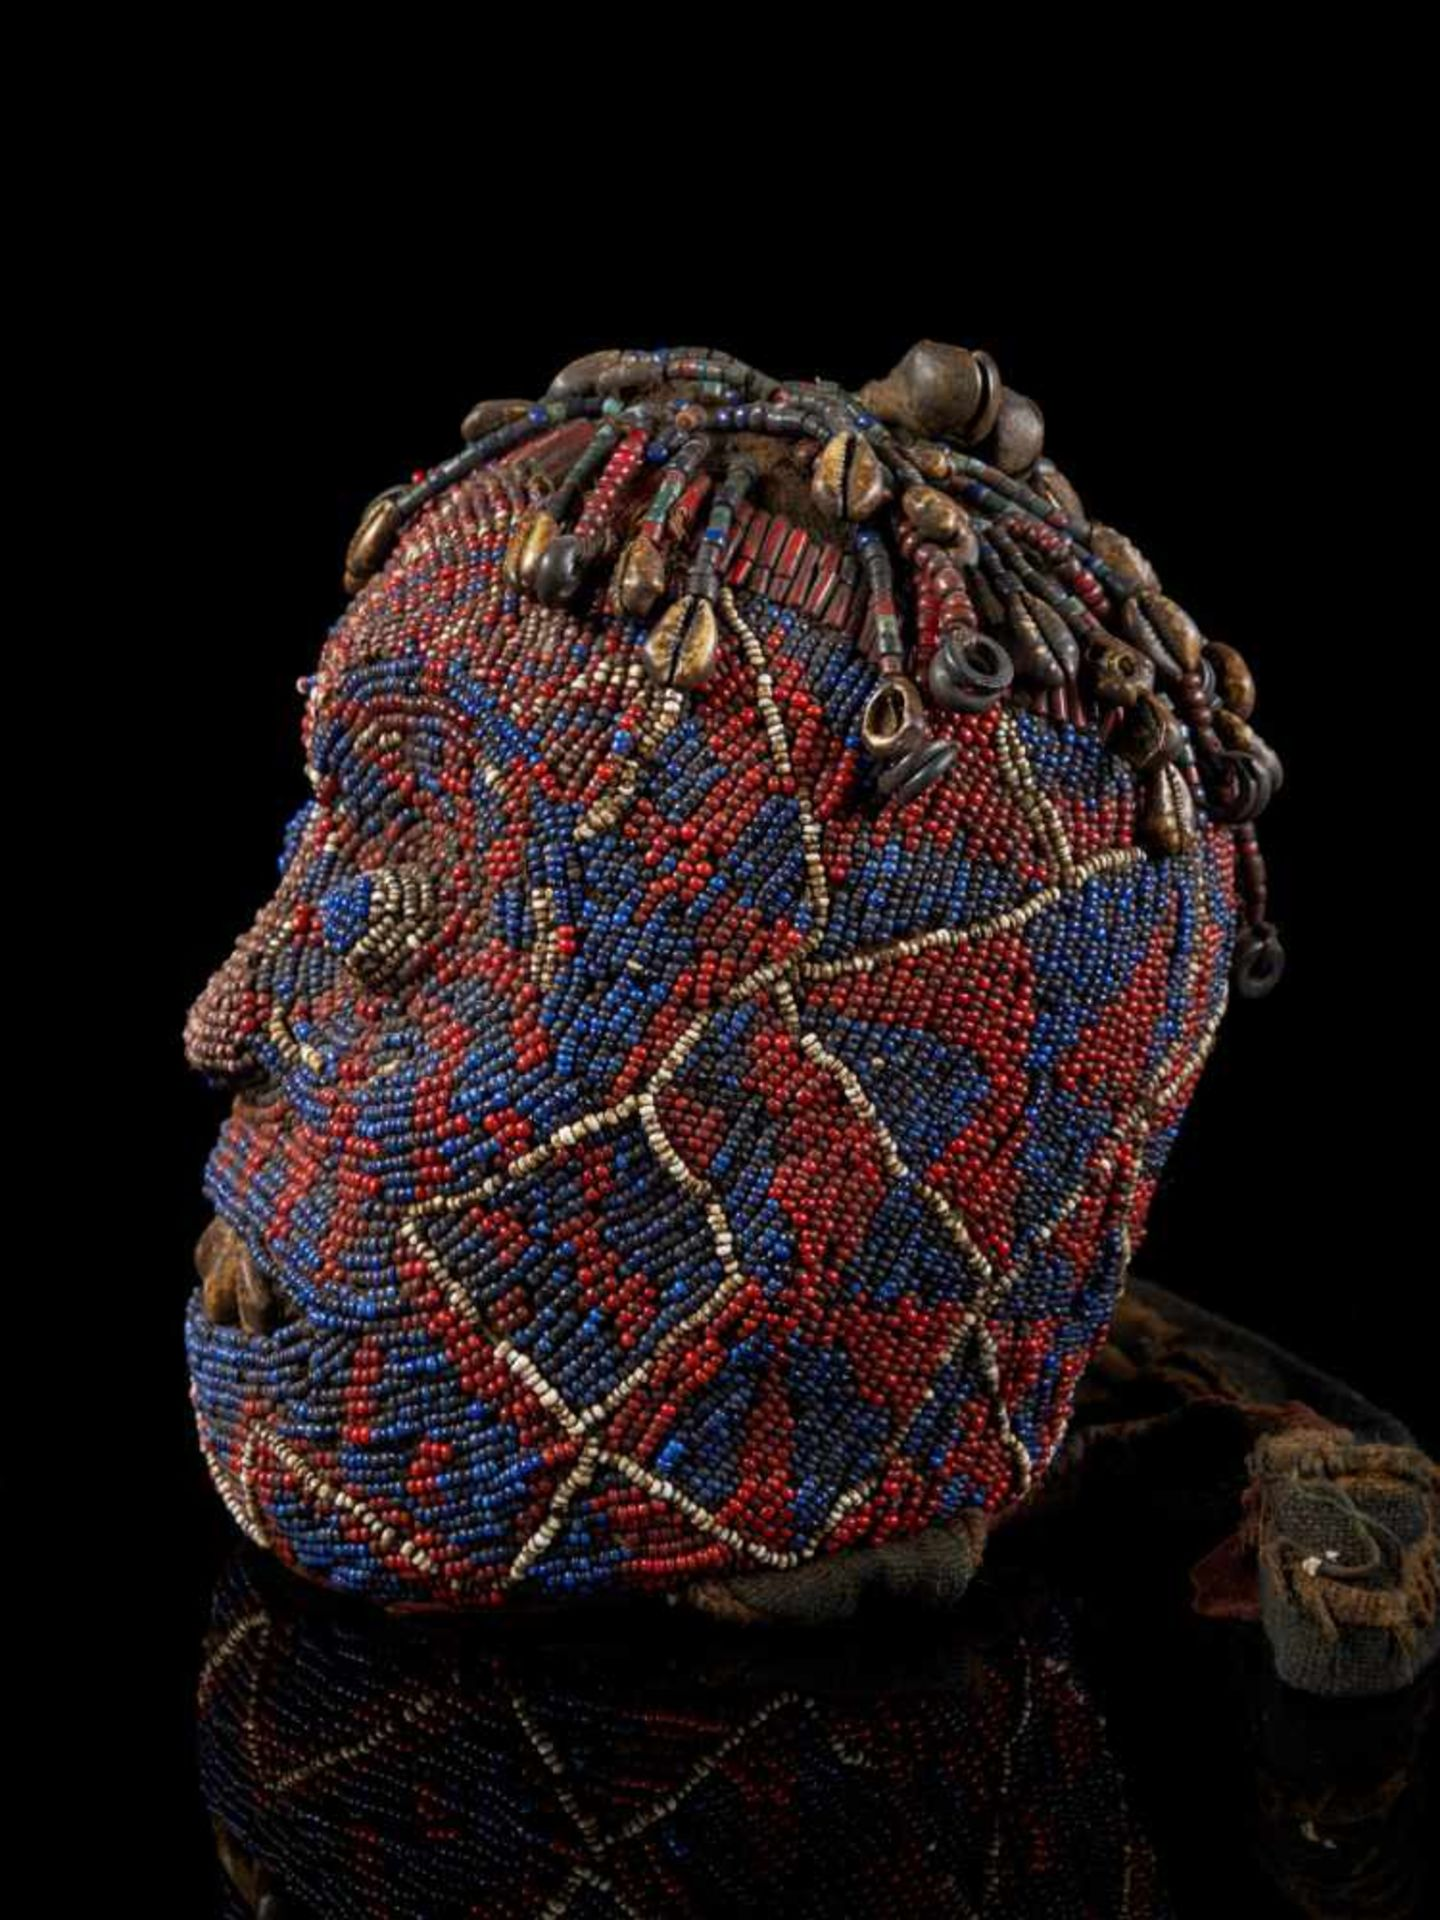 "Beaded Ceremonial Head ""Adwonzen"", Grassland People, Cameroon - Tribal ArtBeaded heads such as this, - Bild 3 aus 6"